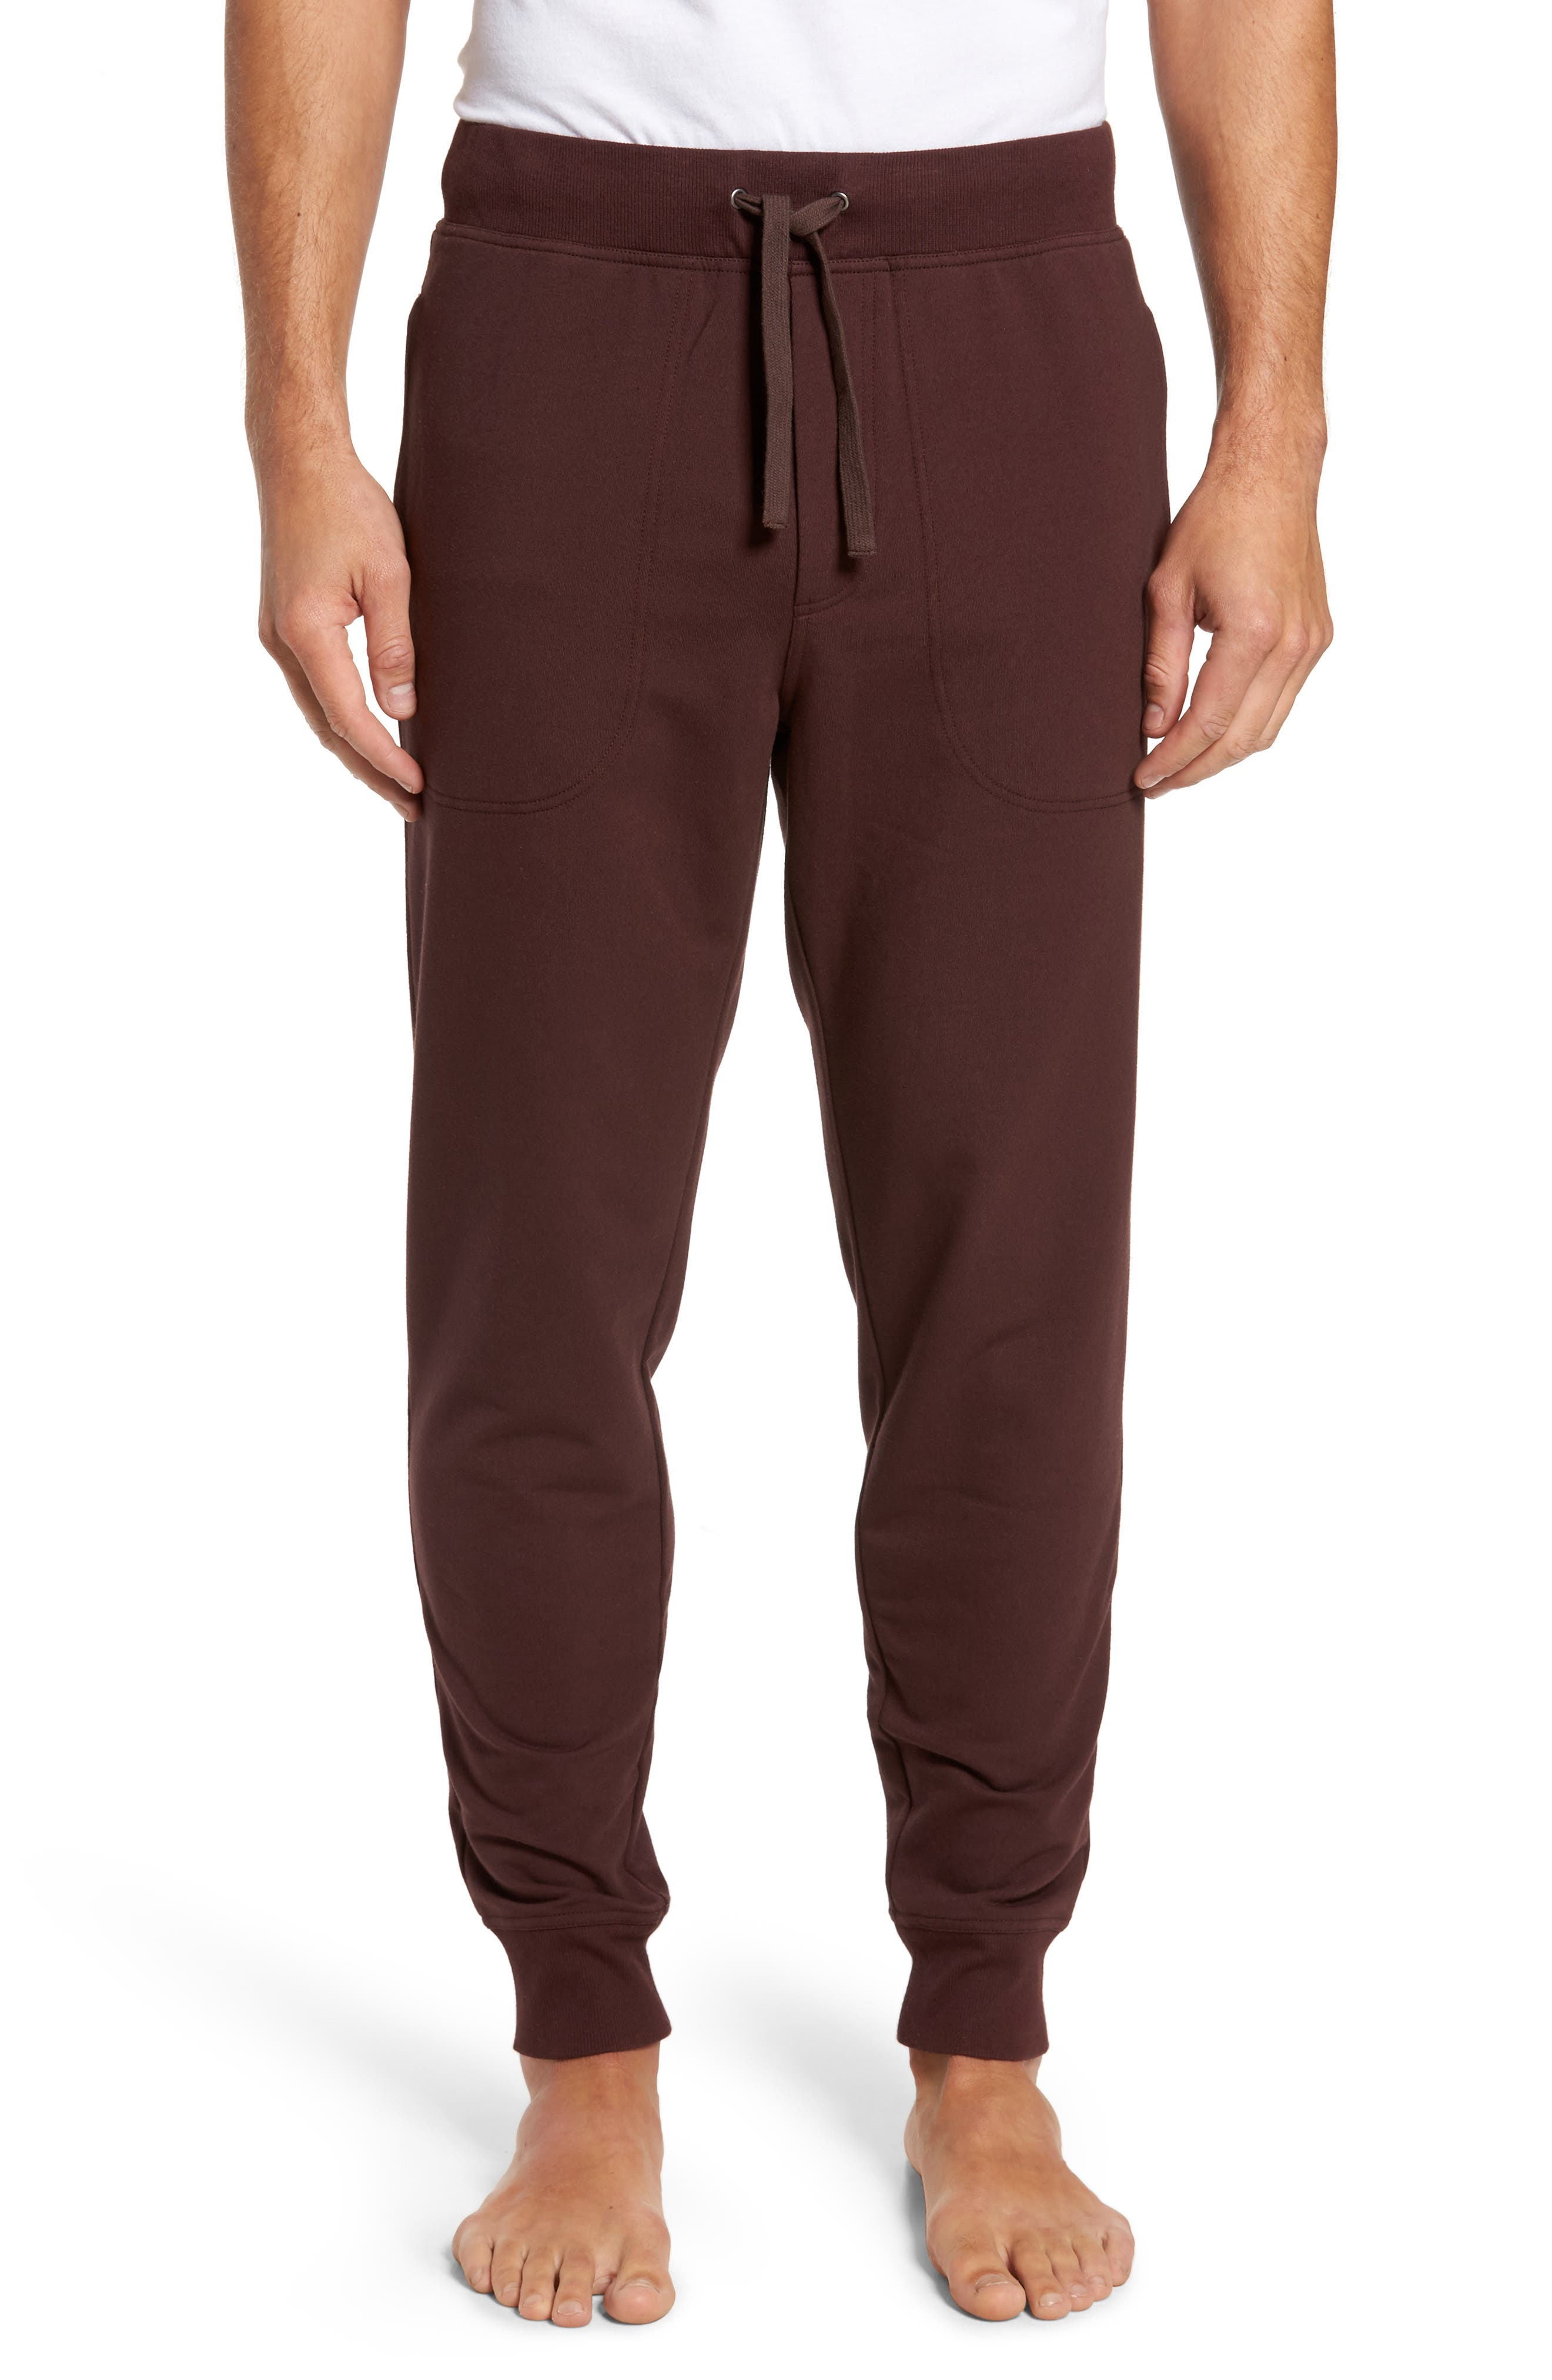 Jakob Lounge Pants,                             Main thumbnail 3, color,